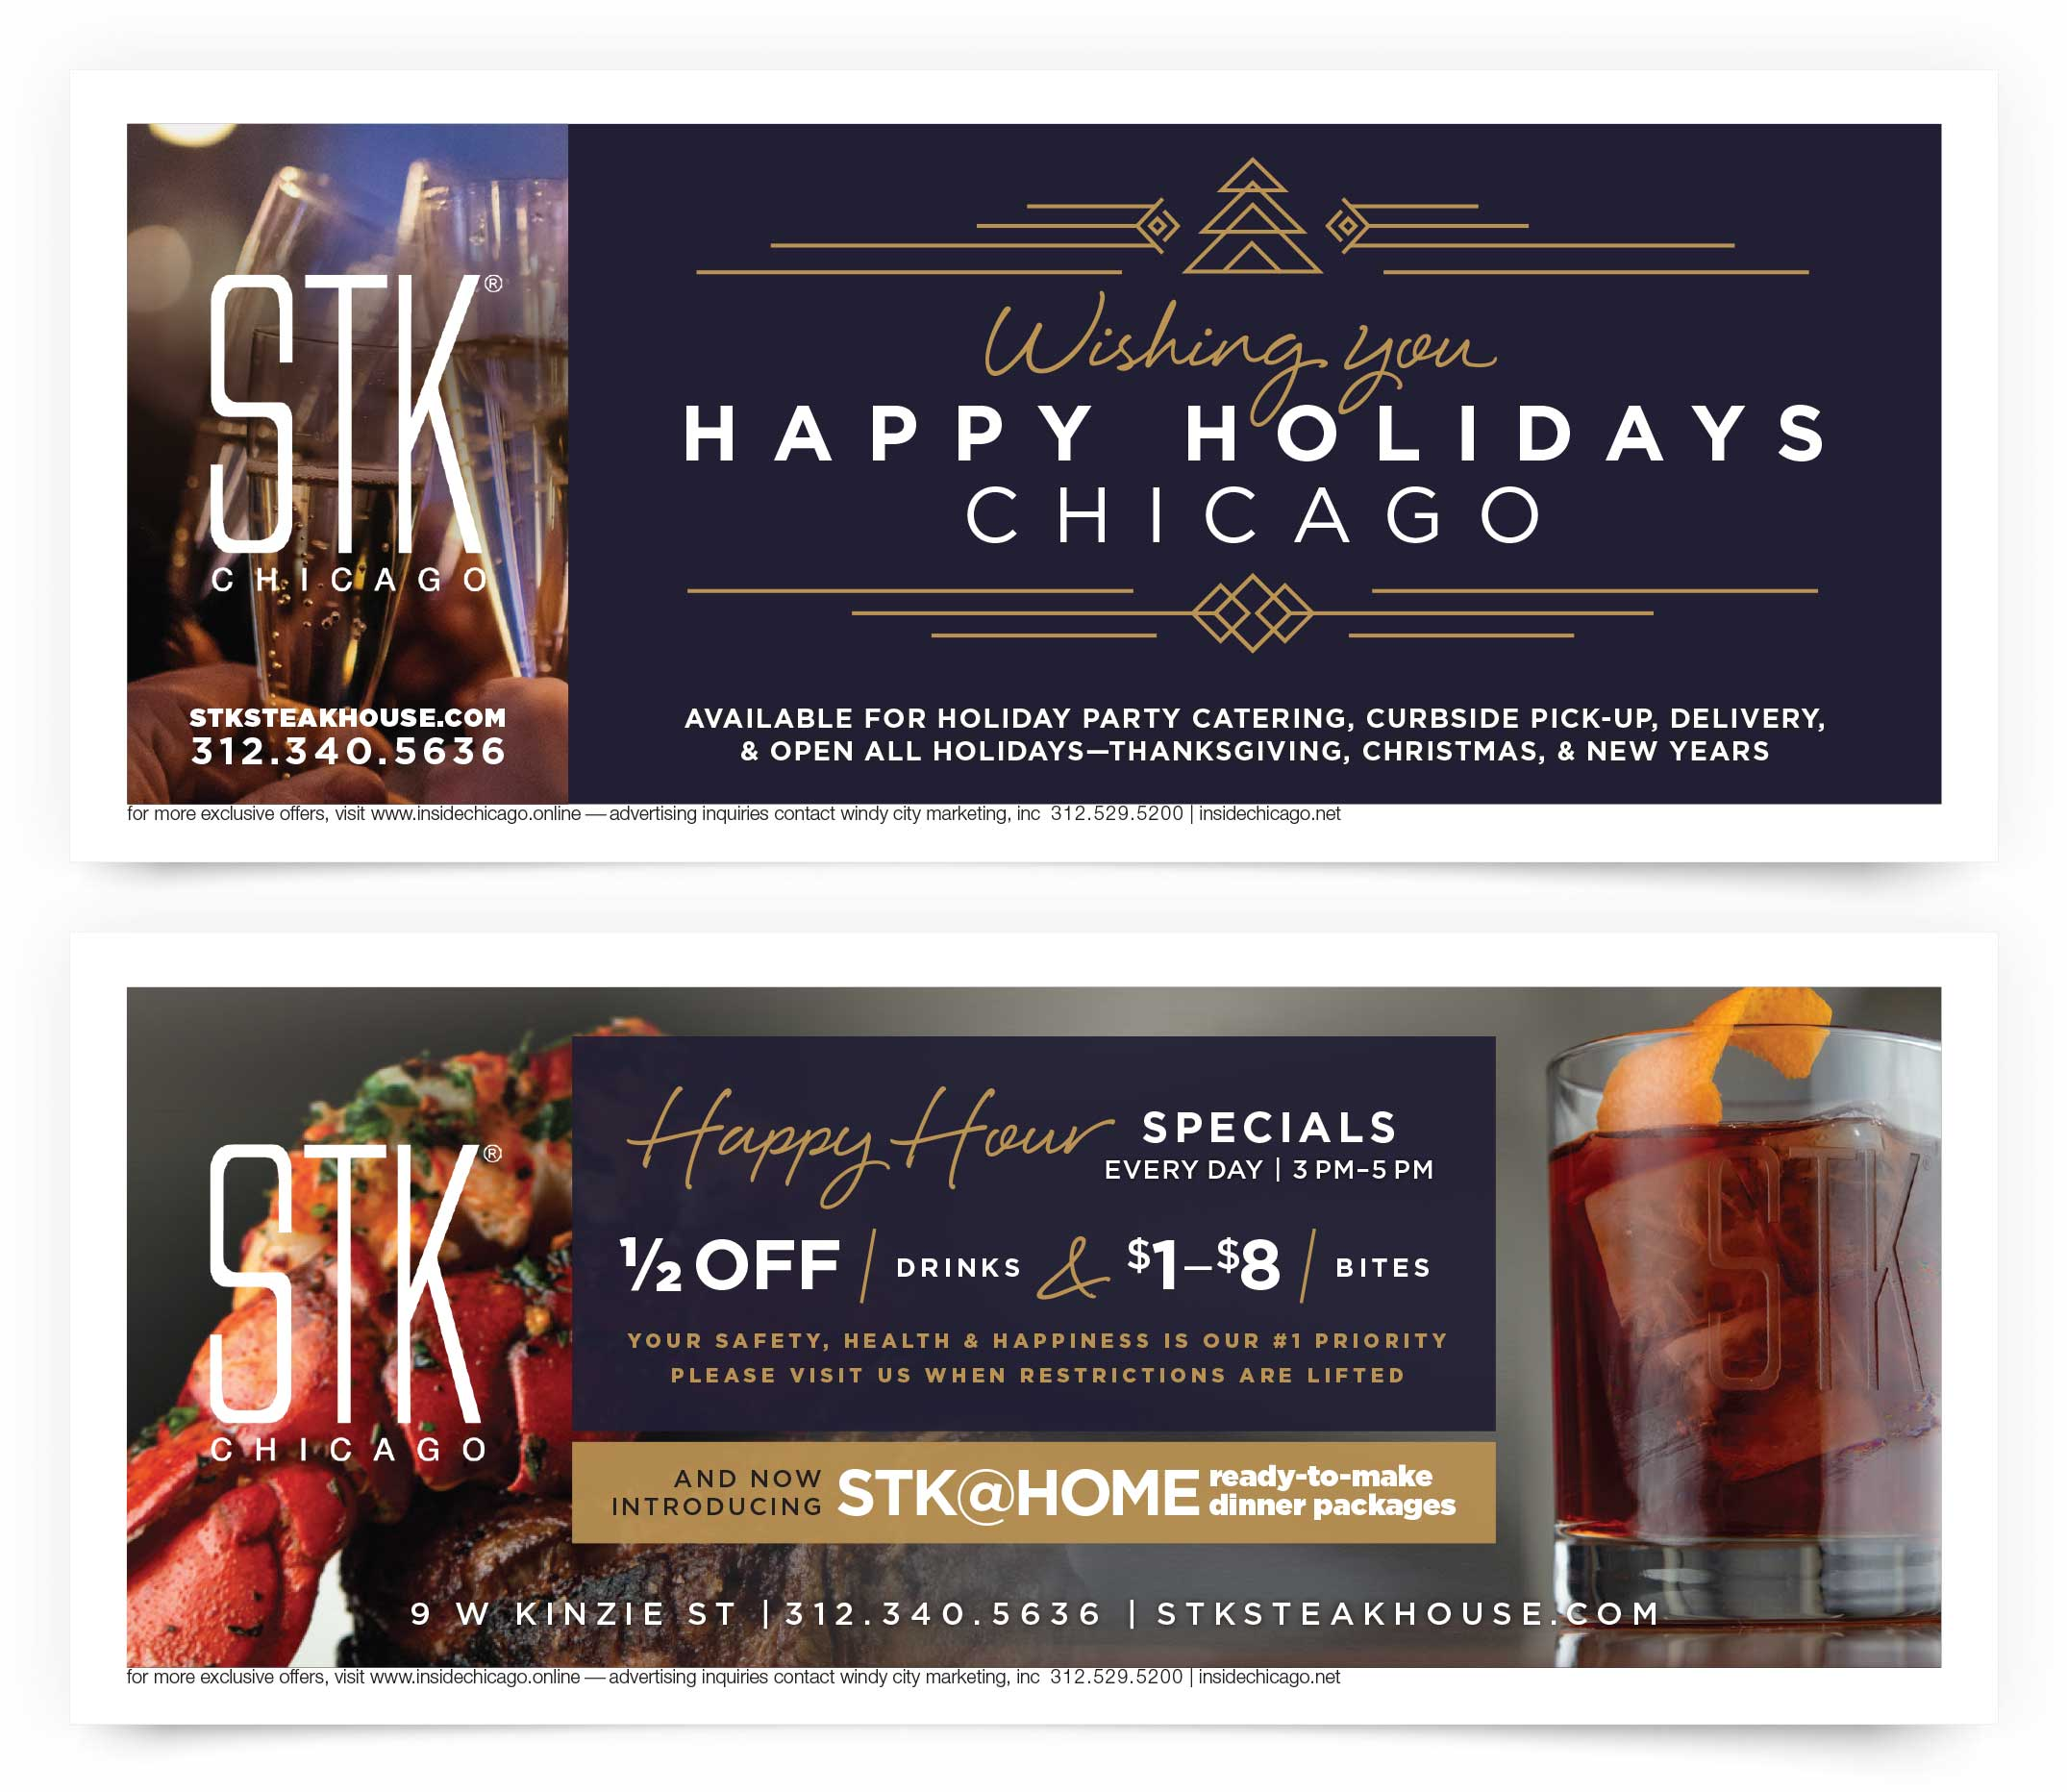 STK Steakhouse Chicago Coupon